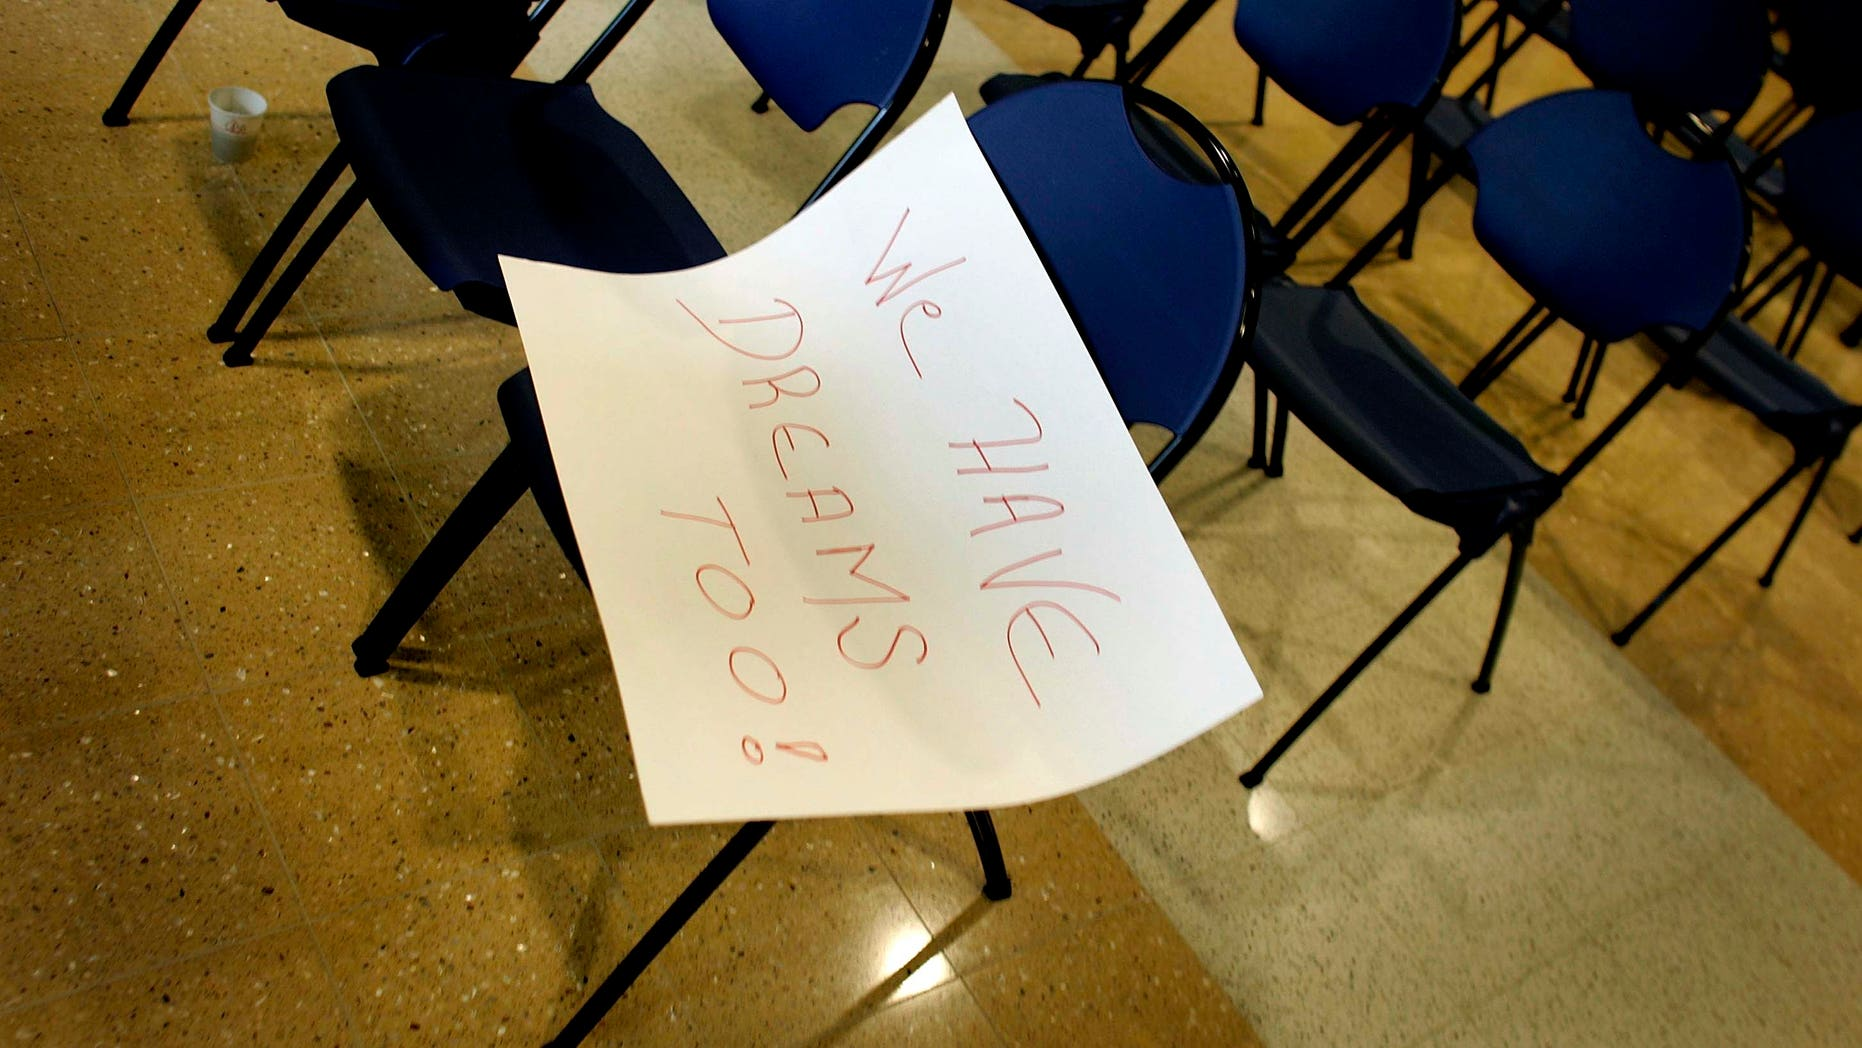 "MIAMI - MARCH 12:  A sign with the words, "" We have dreams too!"", lays on a chair after a press conference to announce The American Dream Act March 12, 2007 at Florida International University in Miami, Florida. The bill, if passed in the United States Congress, would allow for undocumented immigrant students to obtain in-state tuition as well as permit those students, along with those serving in the military, to obtain a green card and legally remain in the United States.  (Photo by Joe Raedle/Getty Images)"